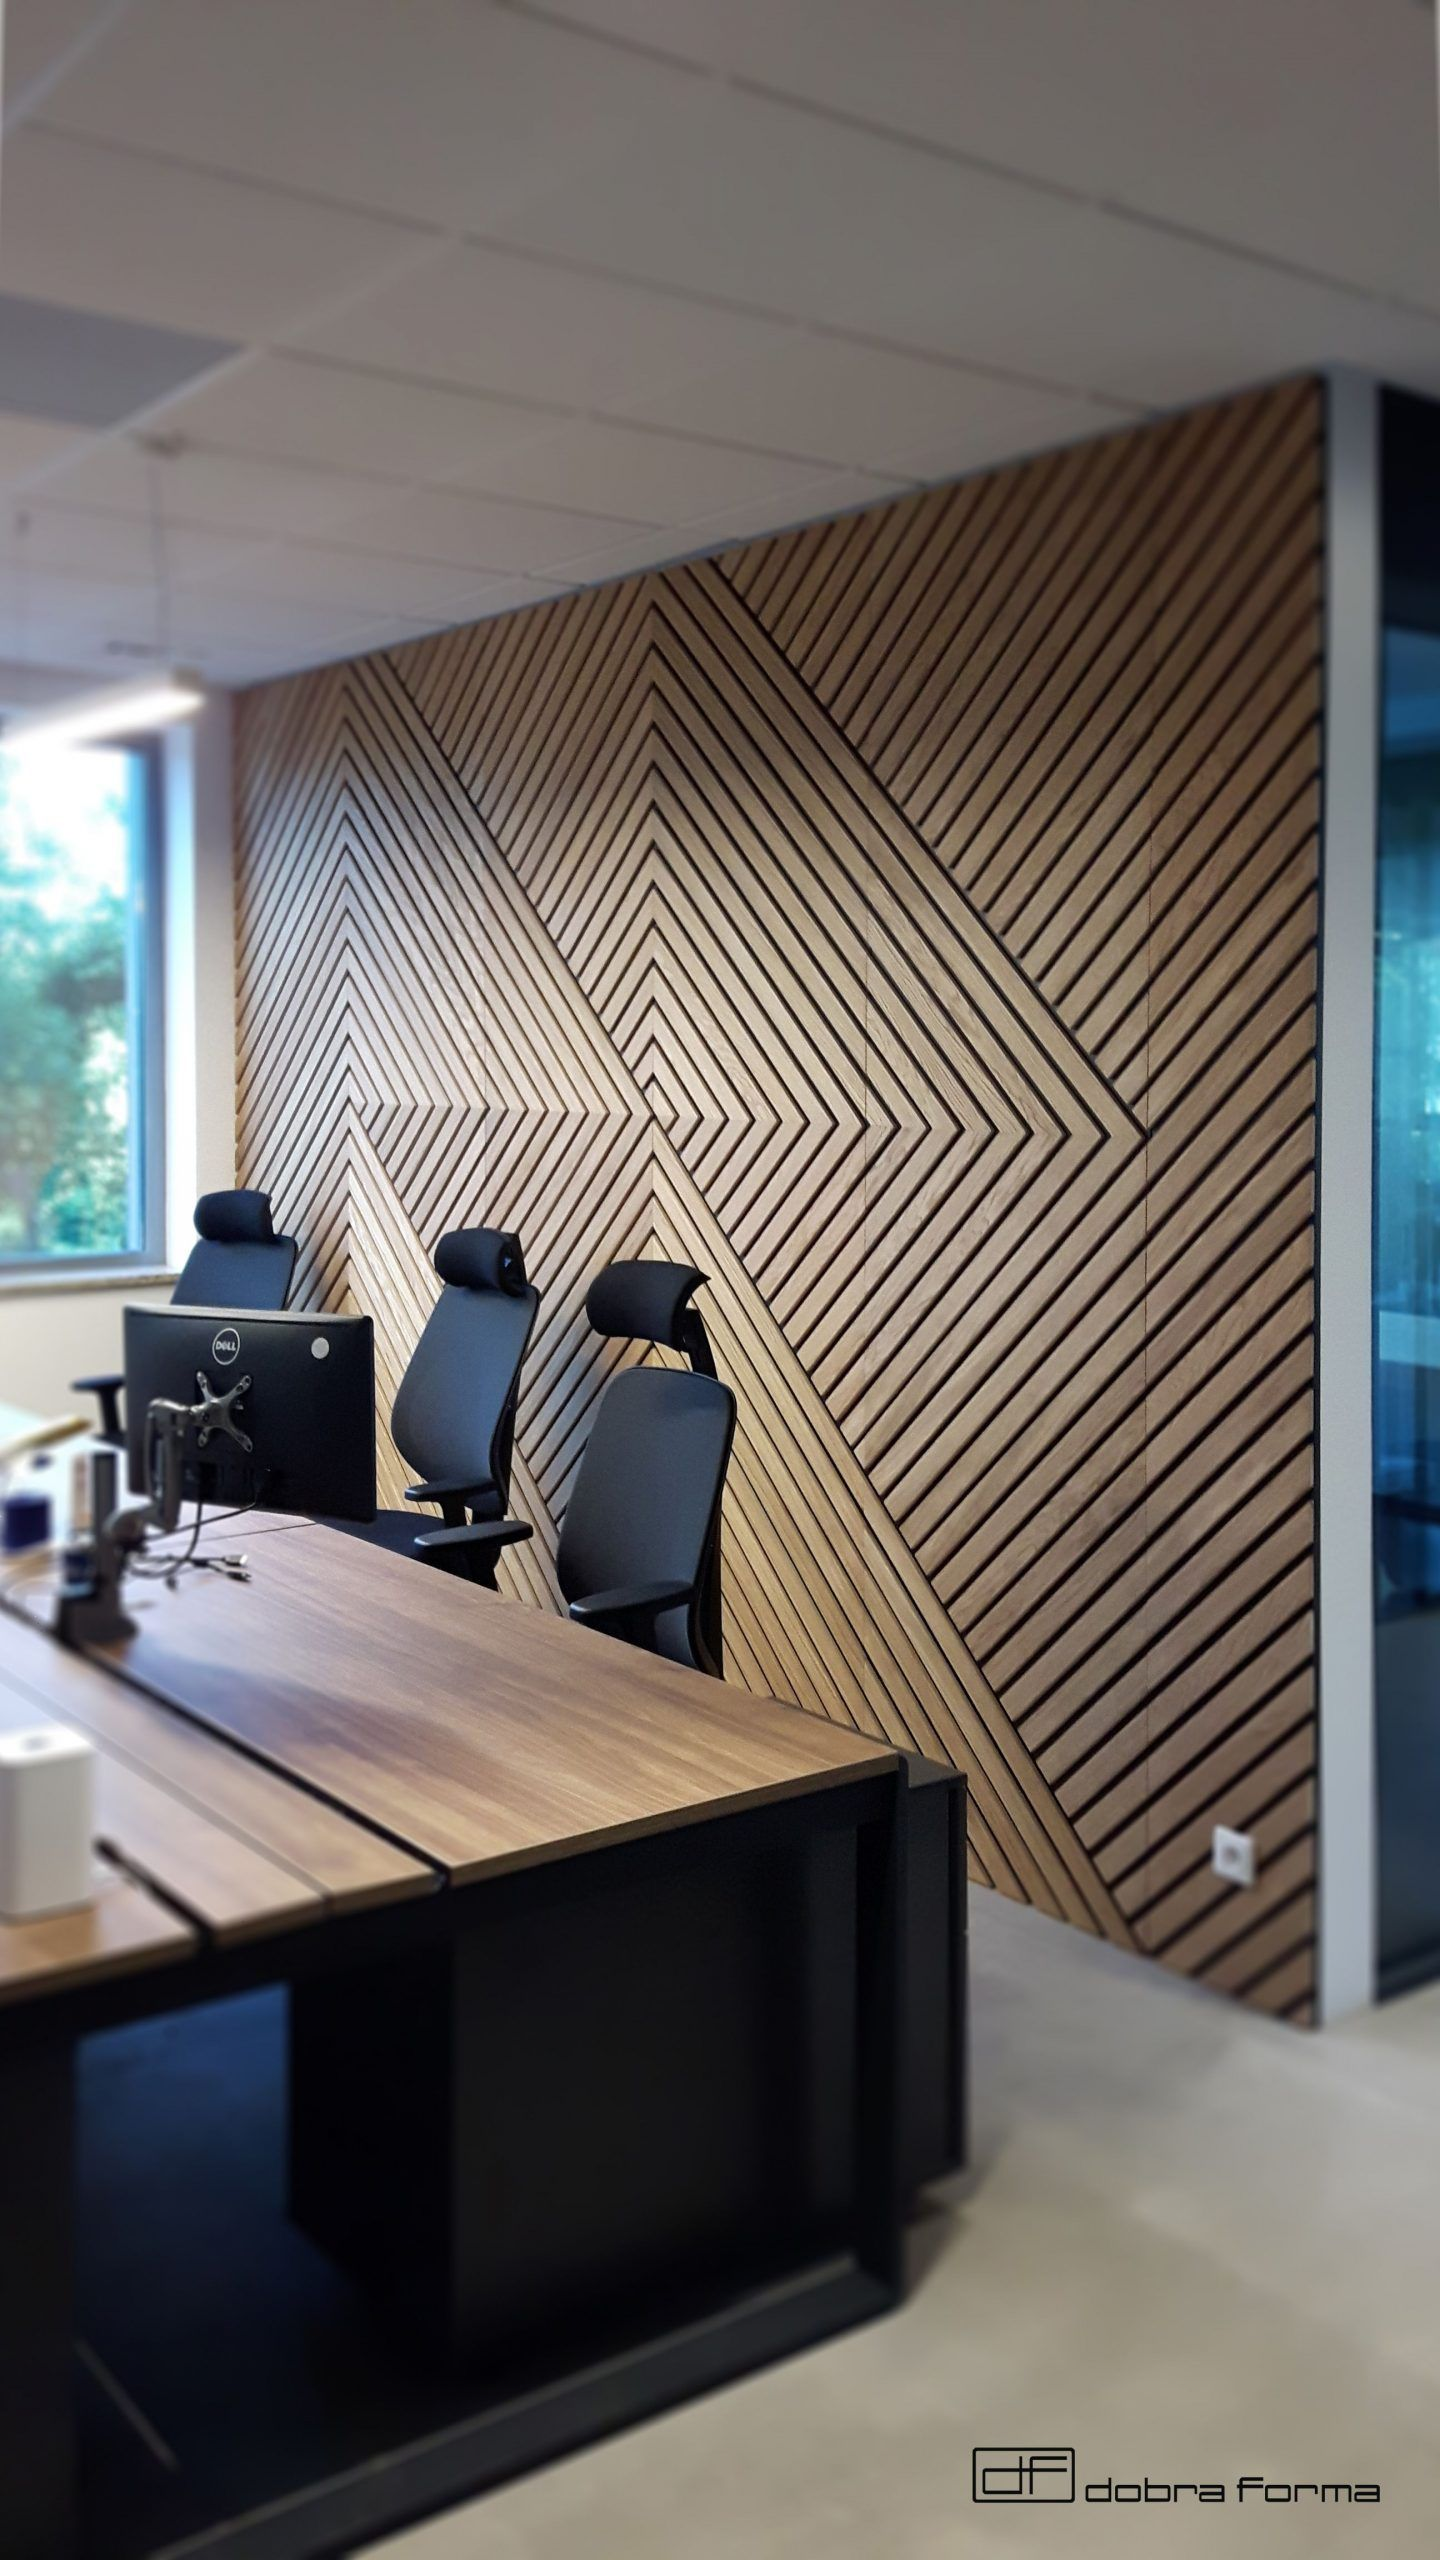 Therapy Office Interior Design What Is Office Interior Design Office Interior Design Ideas Rev In 2020 Wall Panel Design Feature Wall Design Office Interior Design